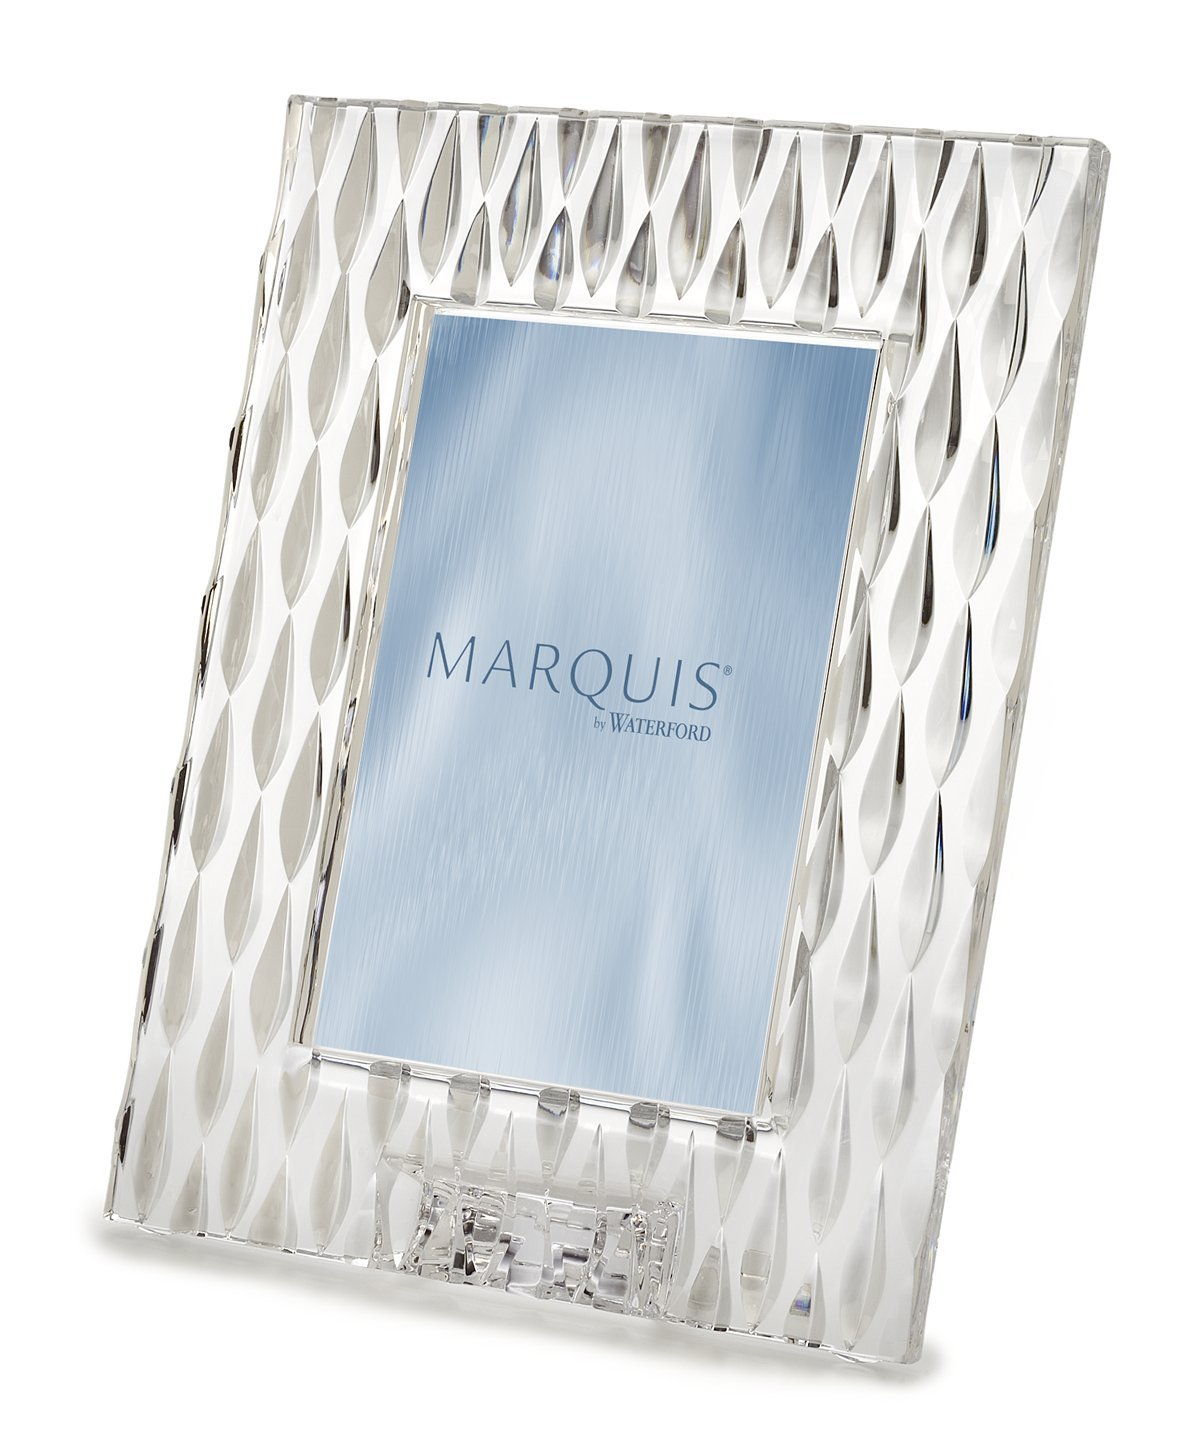 RAINFALL FRAME 4X6 LANDSCAPE Marquis By Waterford 151805